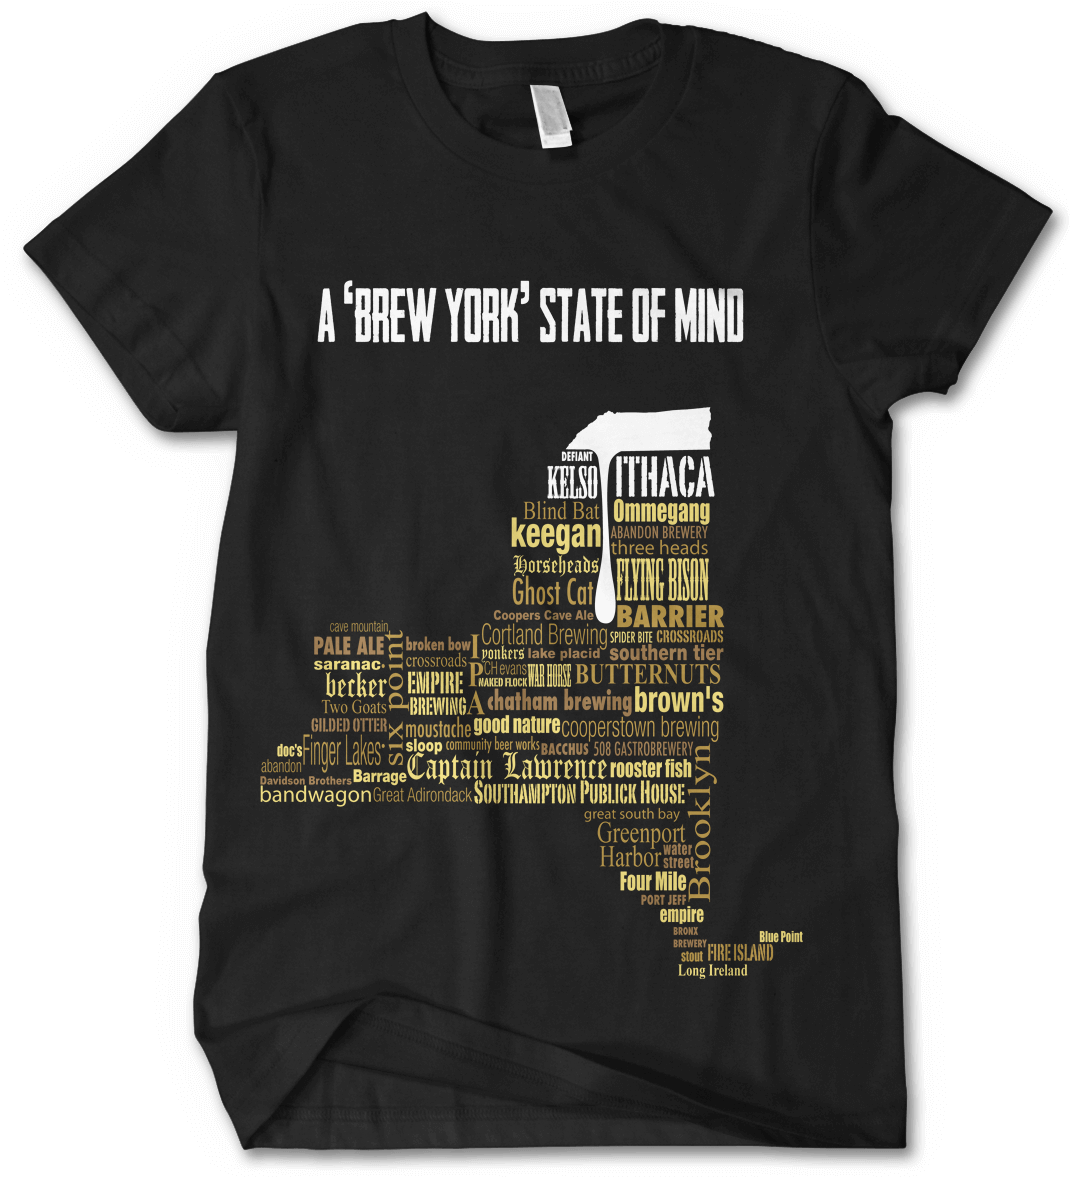 Brew York State of Mind New York Craft Beer Shirt